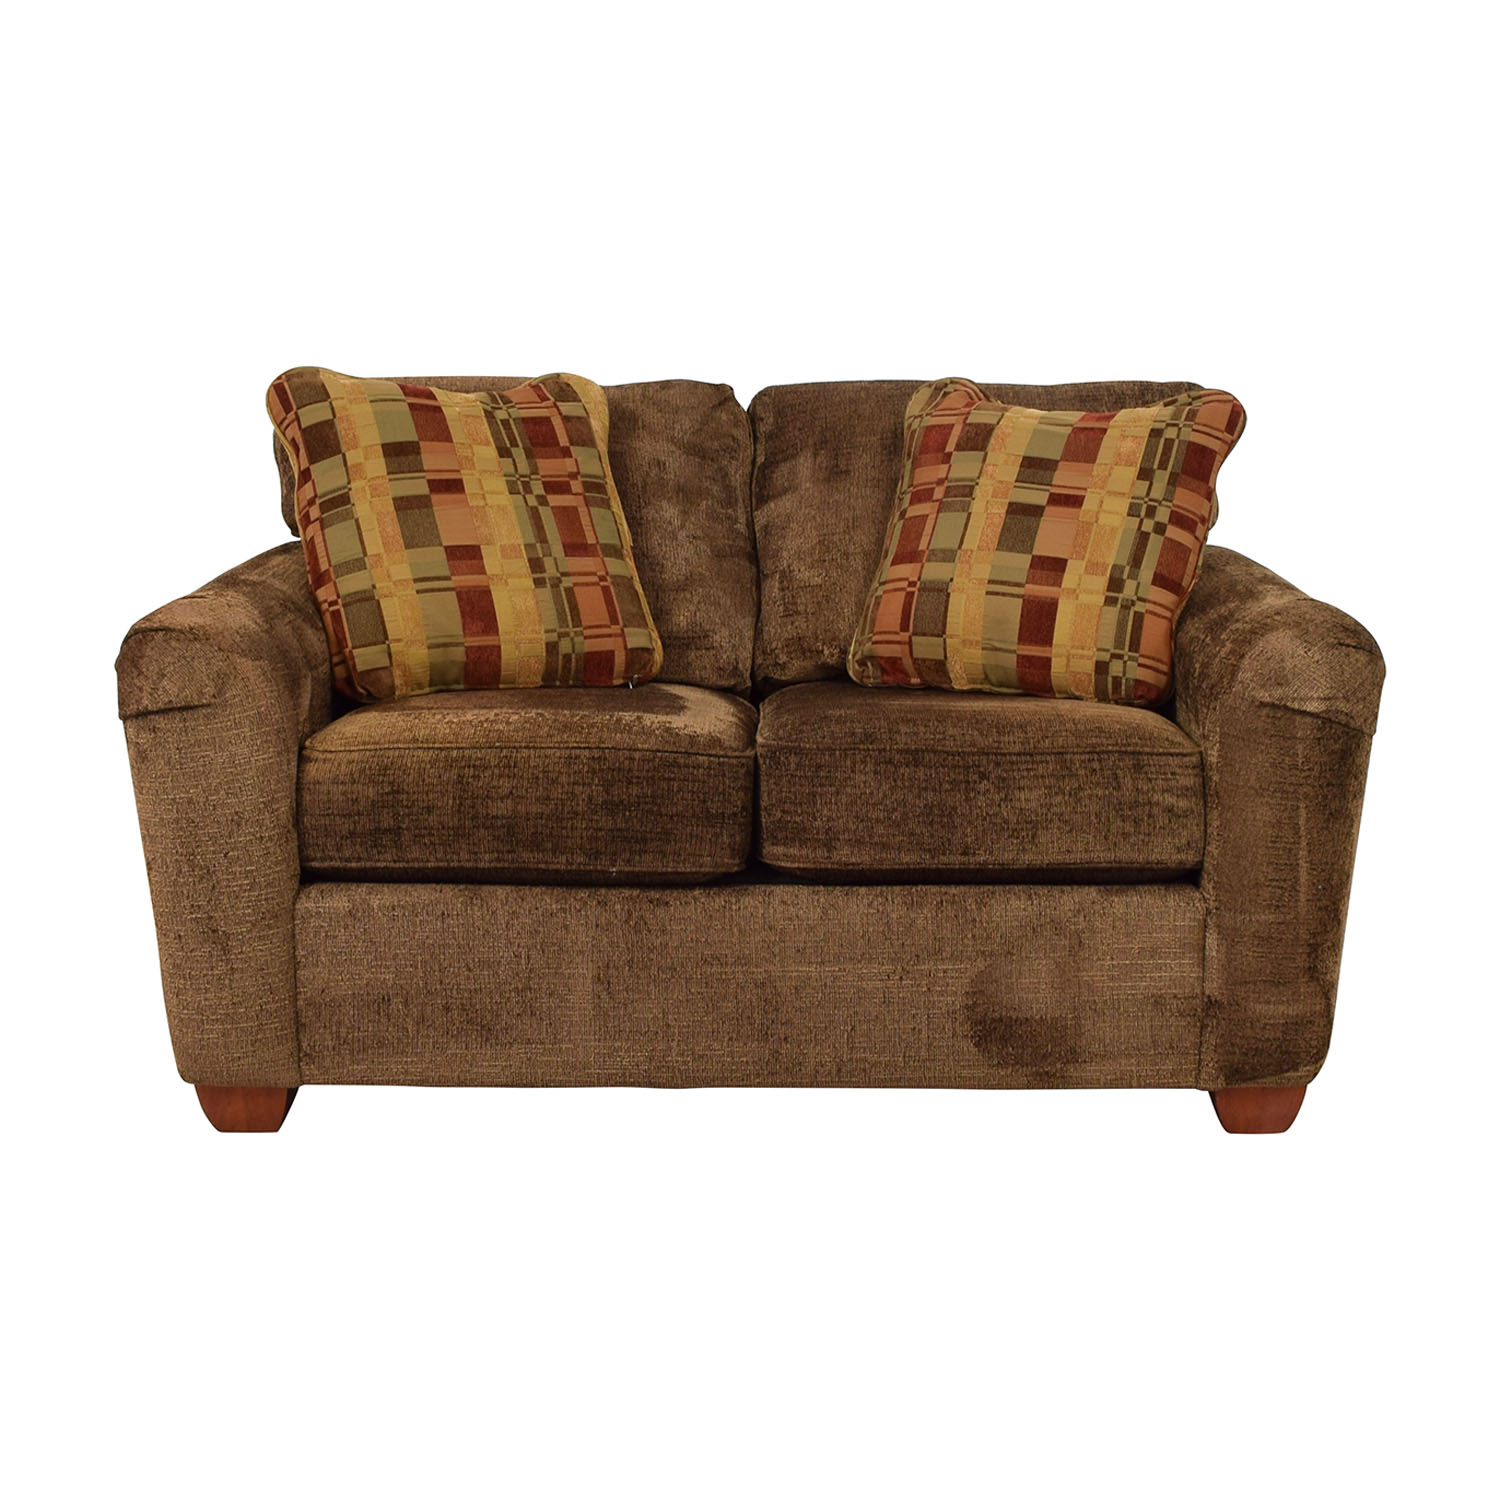 buy La-Z-Boy Sofa La-Z-Boy Loveseats